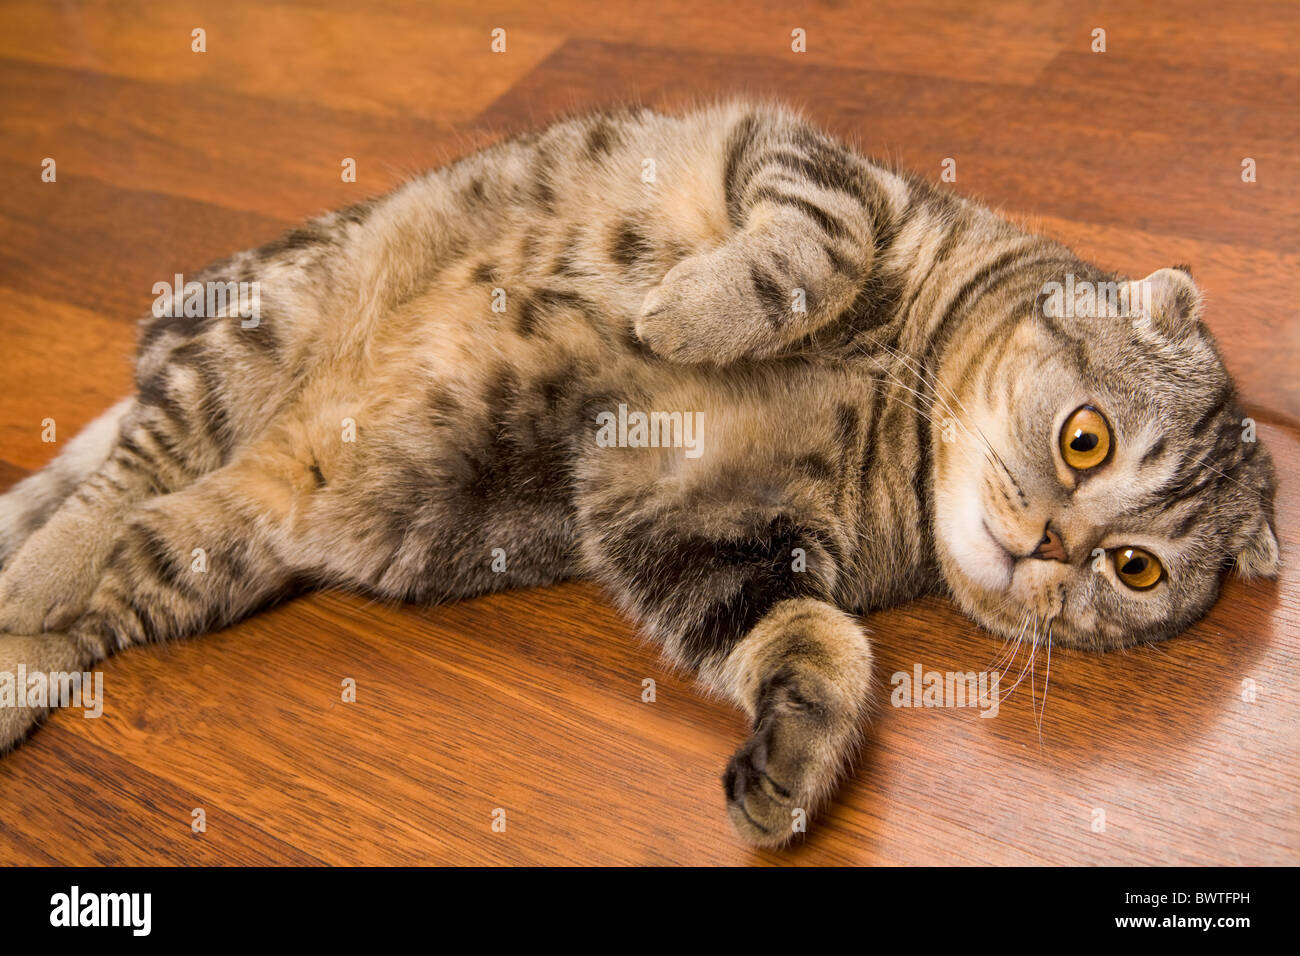 Image of cute grey cat with yellow eyes lying on the floor - Stock Image